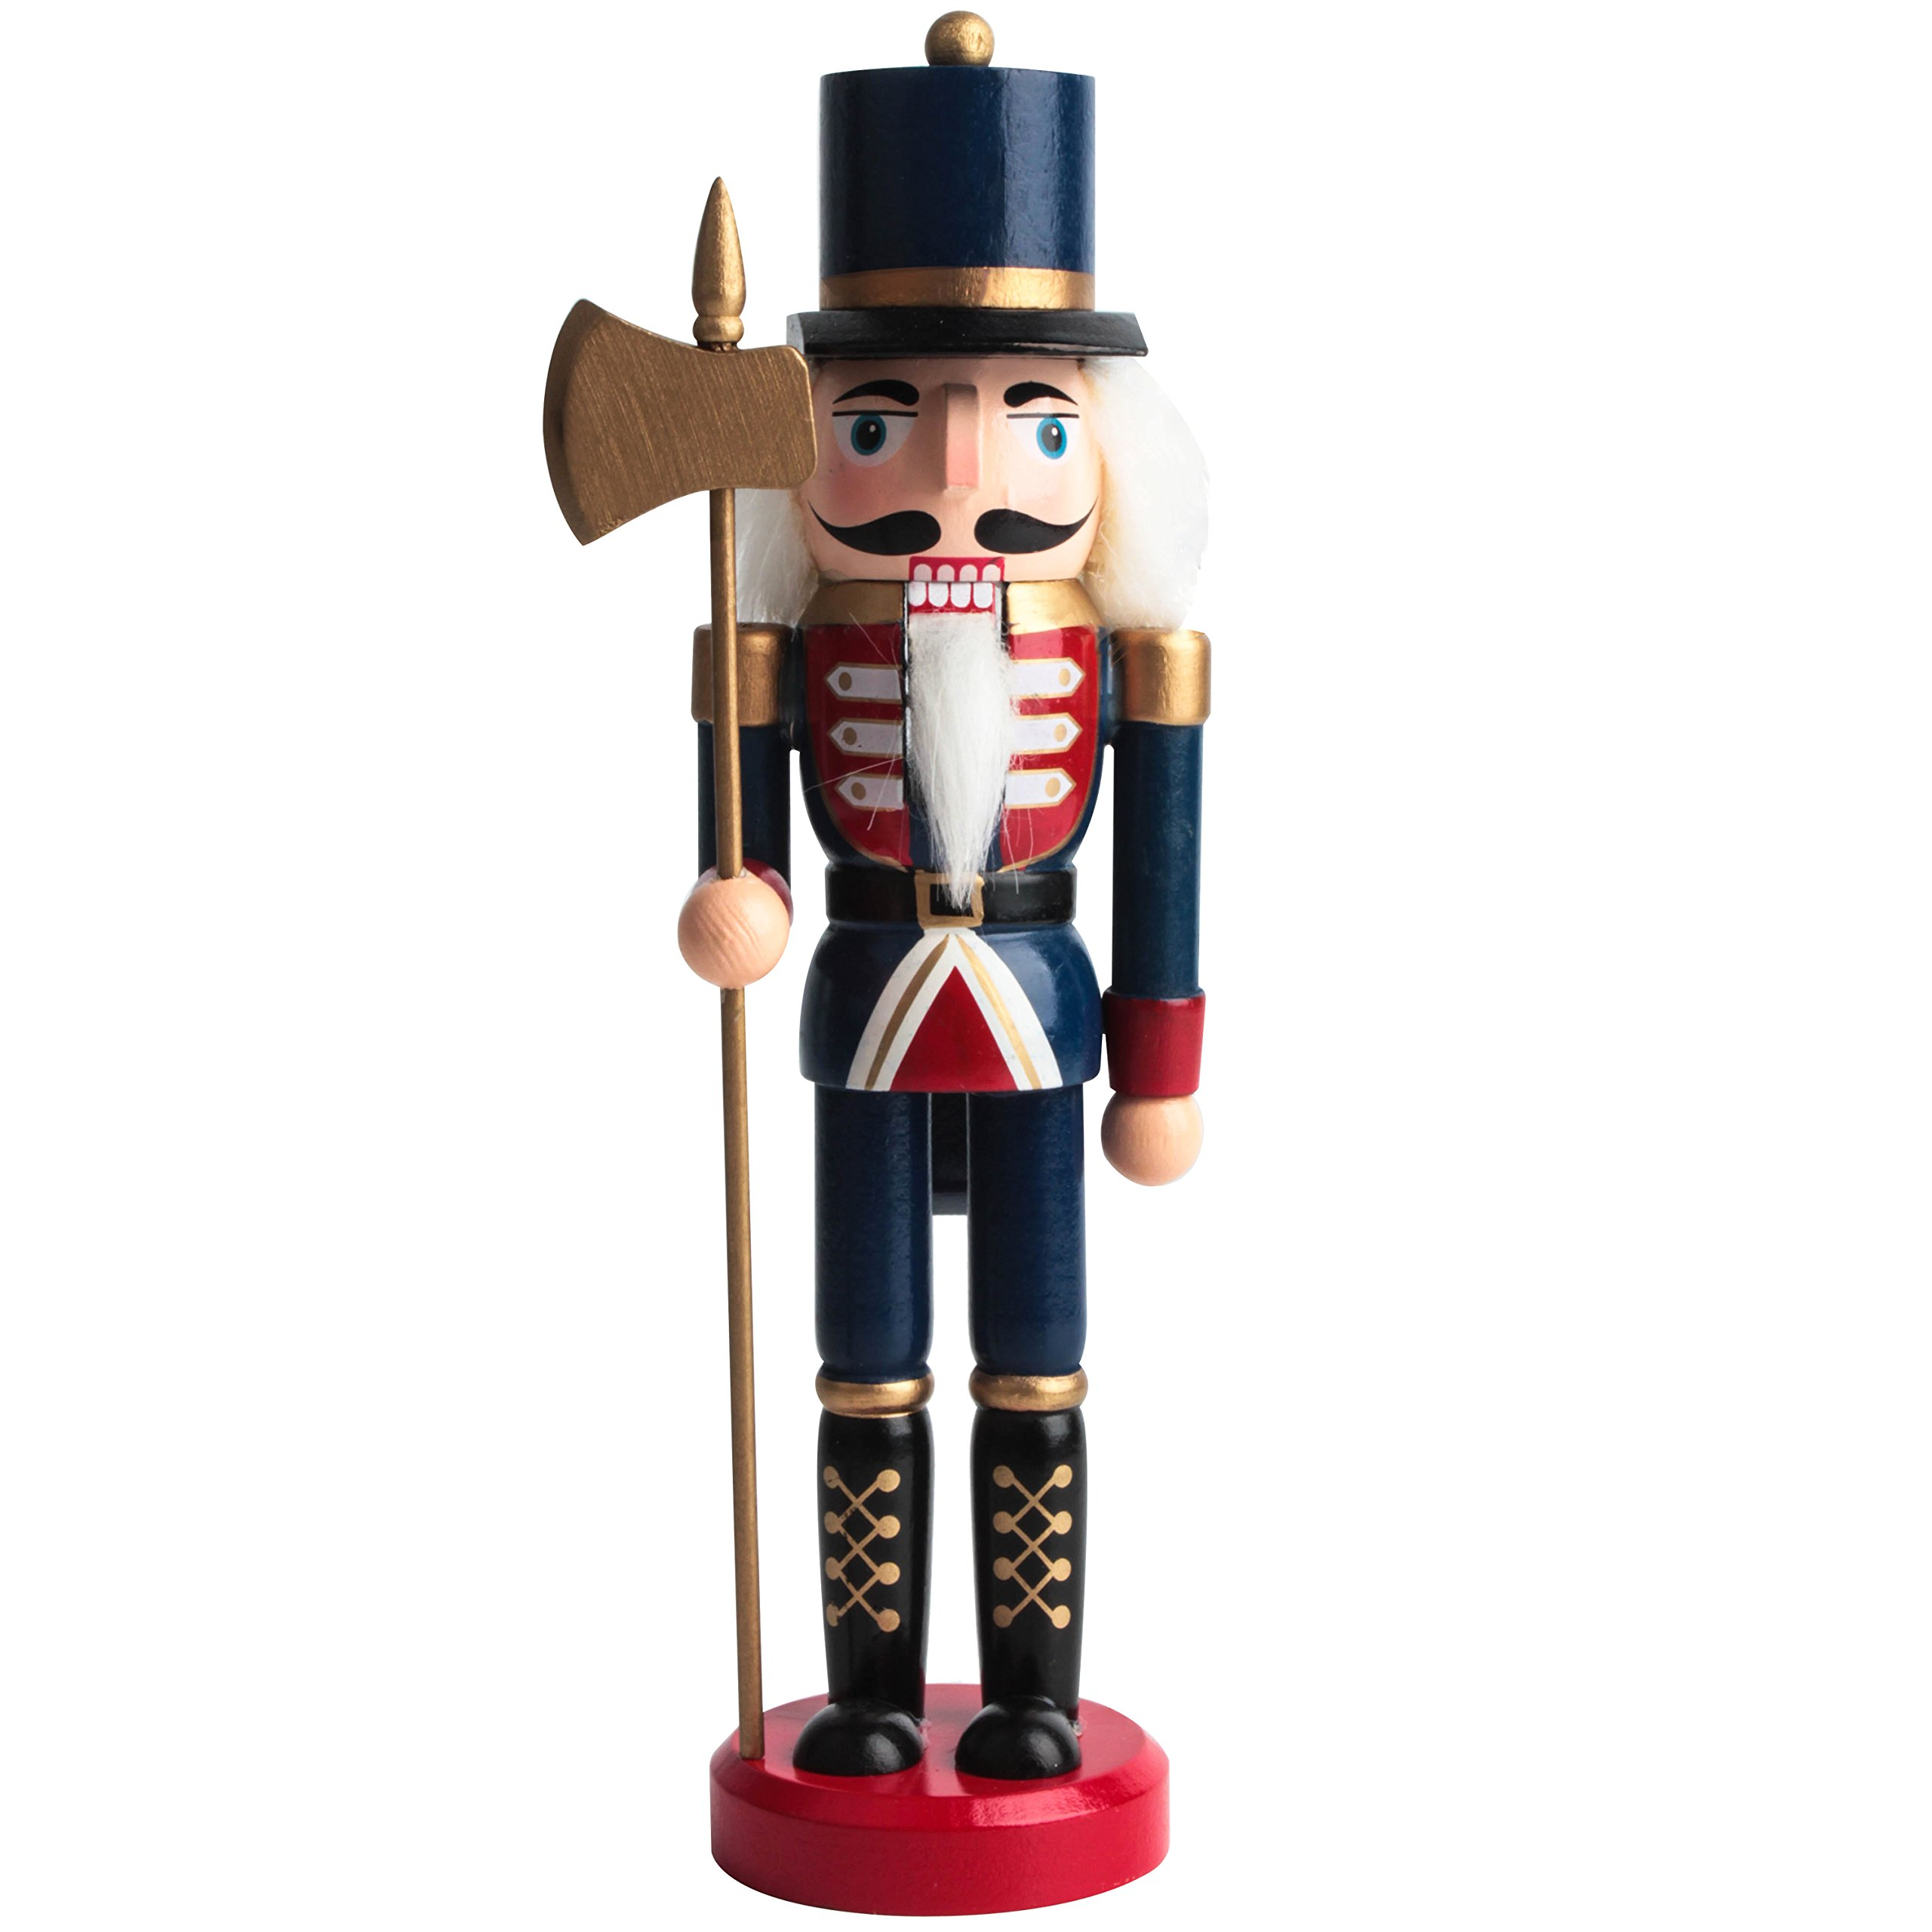 Jusdreen 10.3'' Christmas Nutcracker Ornaments Christmas Day Decoration Xmas Puppet Soldiers - Wooden